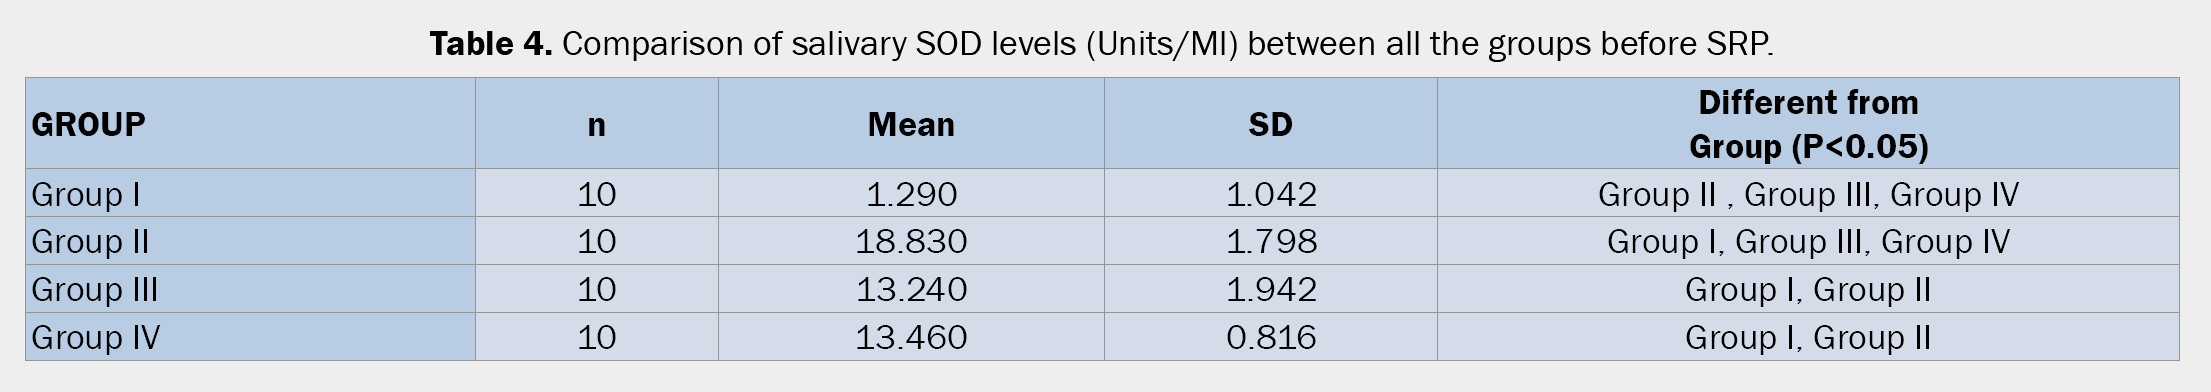 Dental-Sciences-Comparison-salivary-SOD-levels